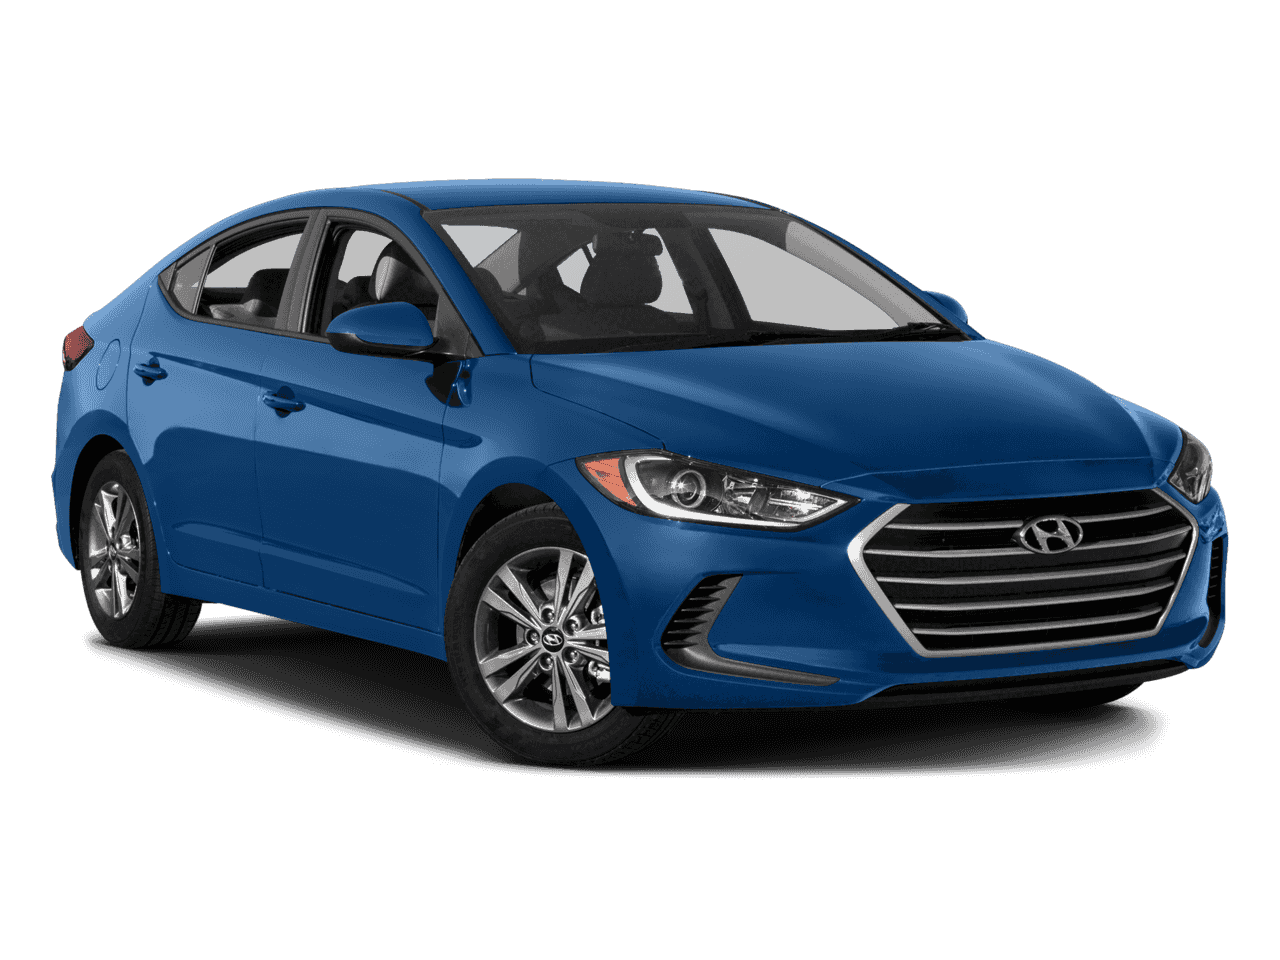 Capitol Hyundai San Jose >> New Hyundai Cars, SUVs & Hatchbacks for Sale in San Jose, CA.